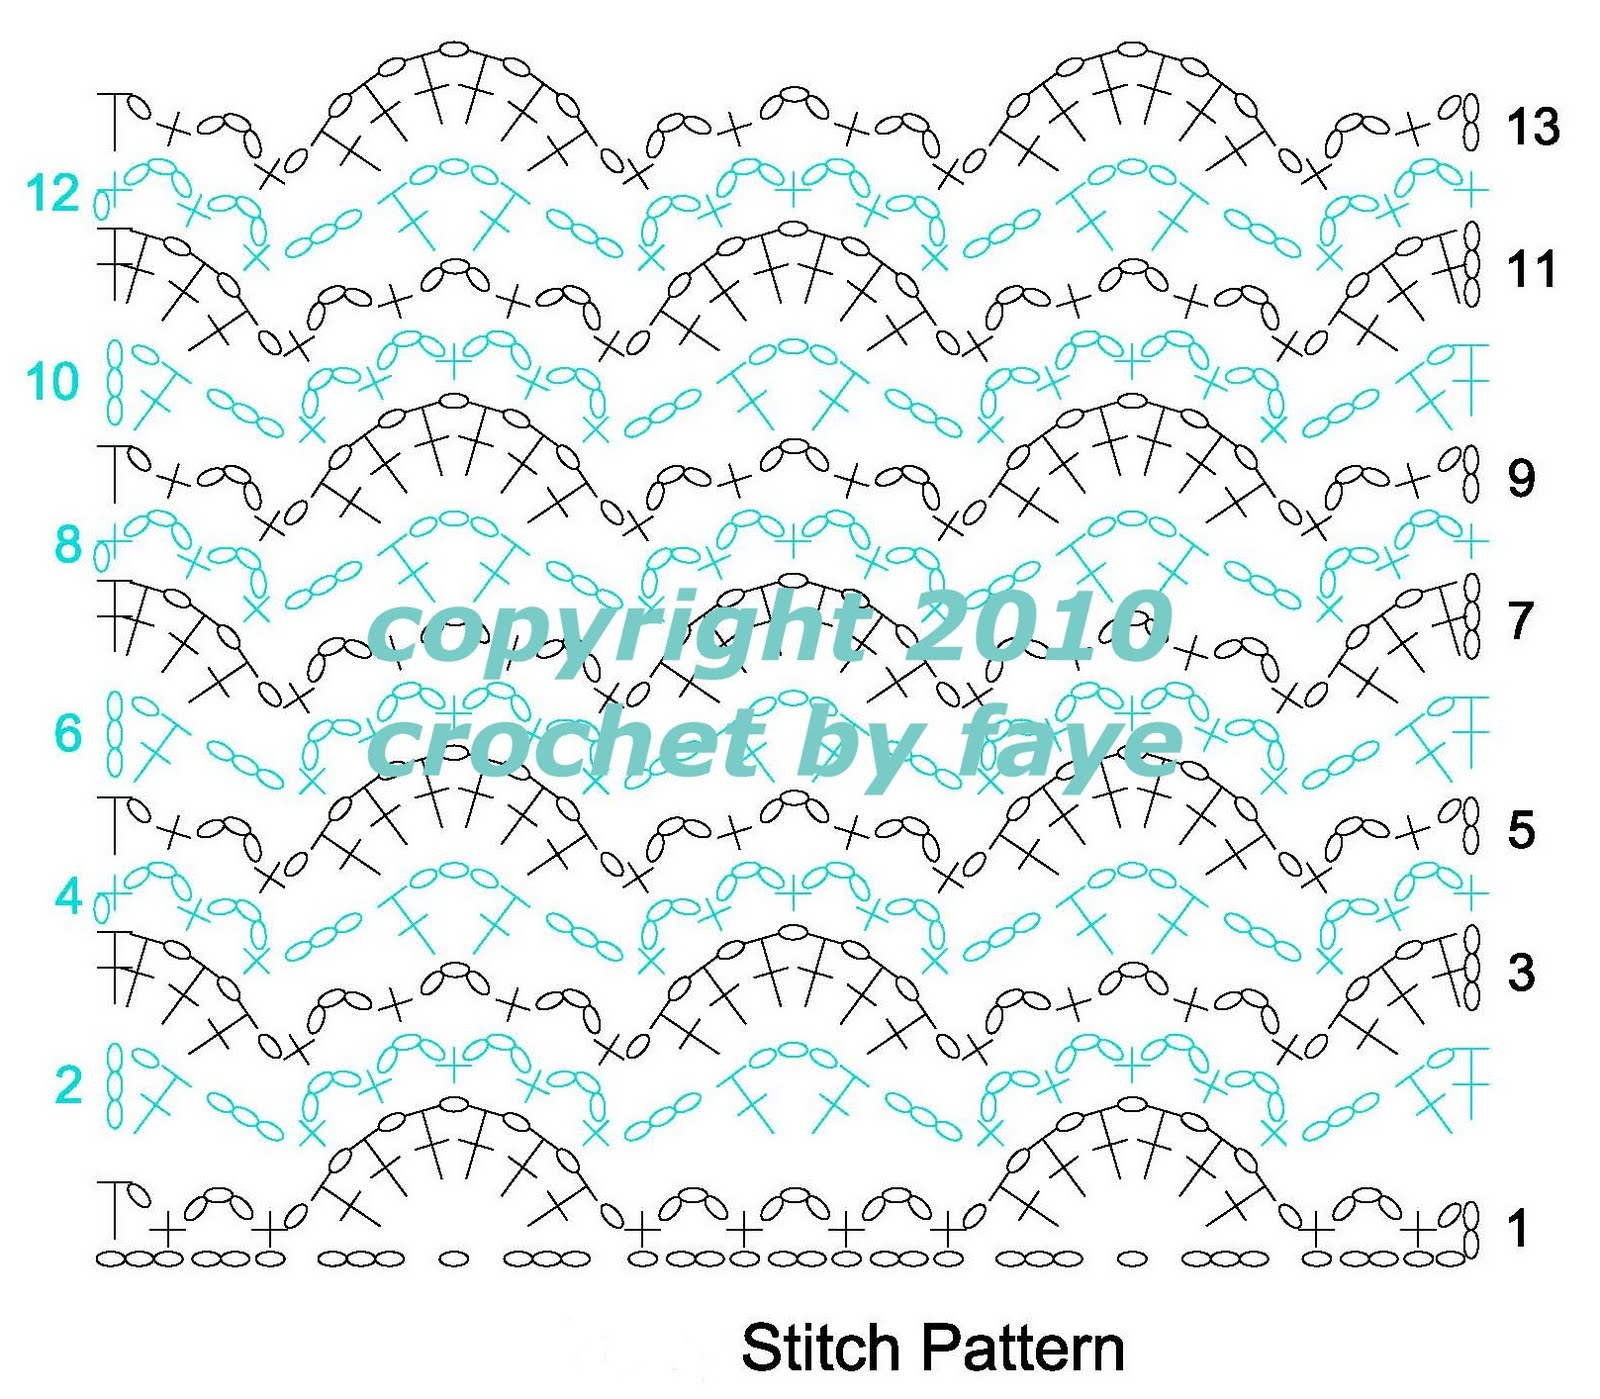 diagram crochet pattern labeled leaf structure by faye lucine in diagrams